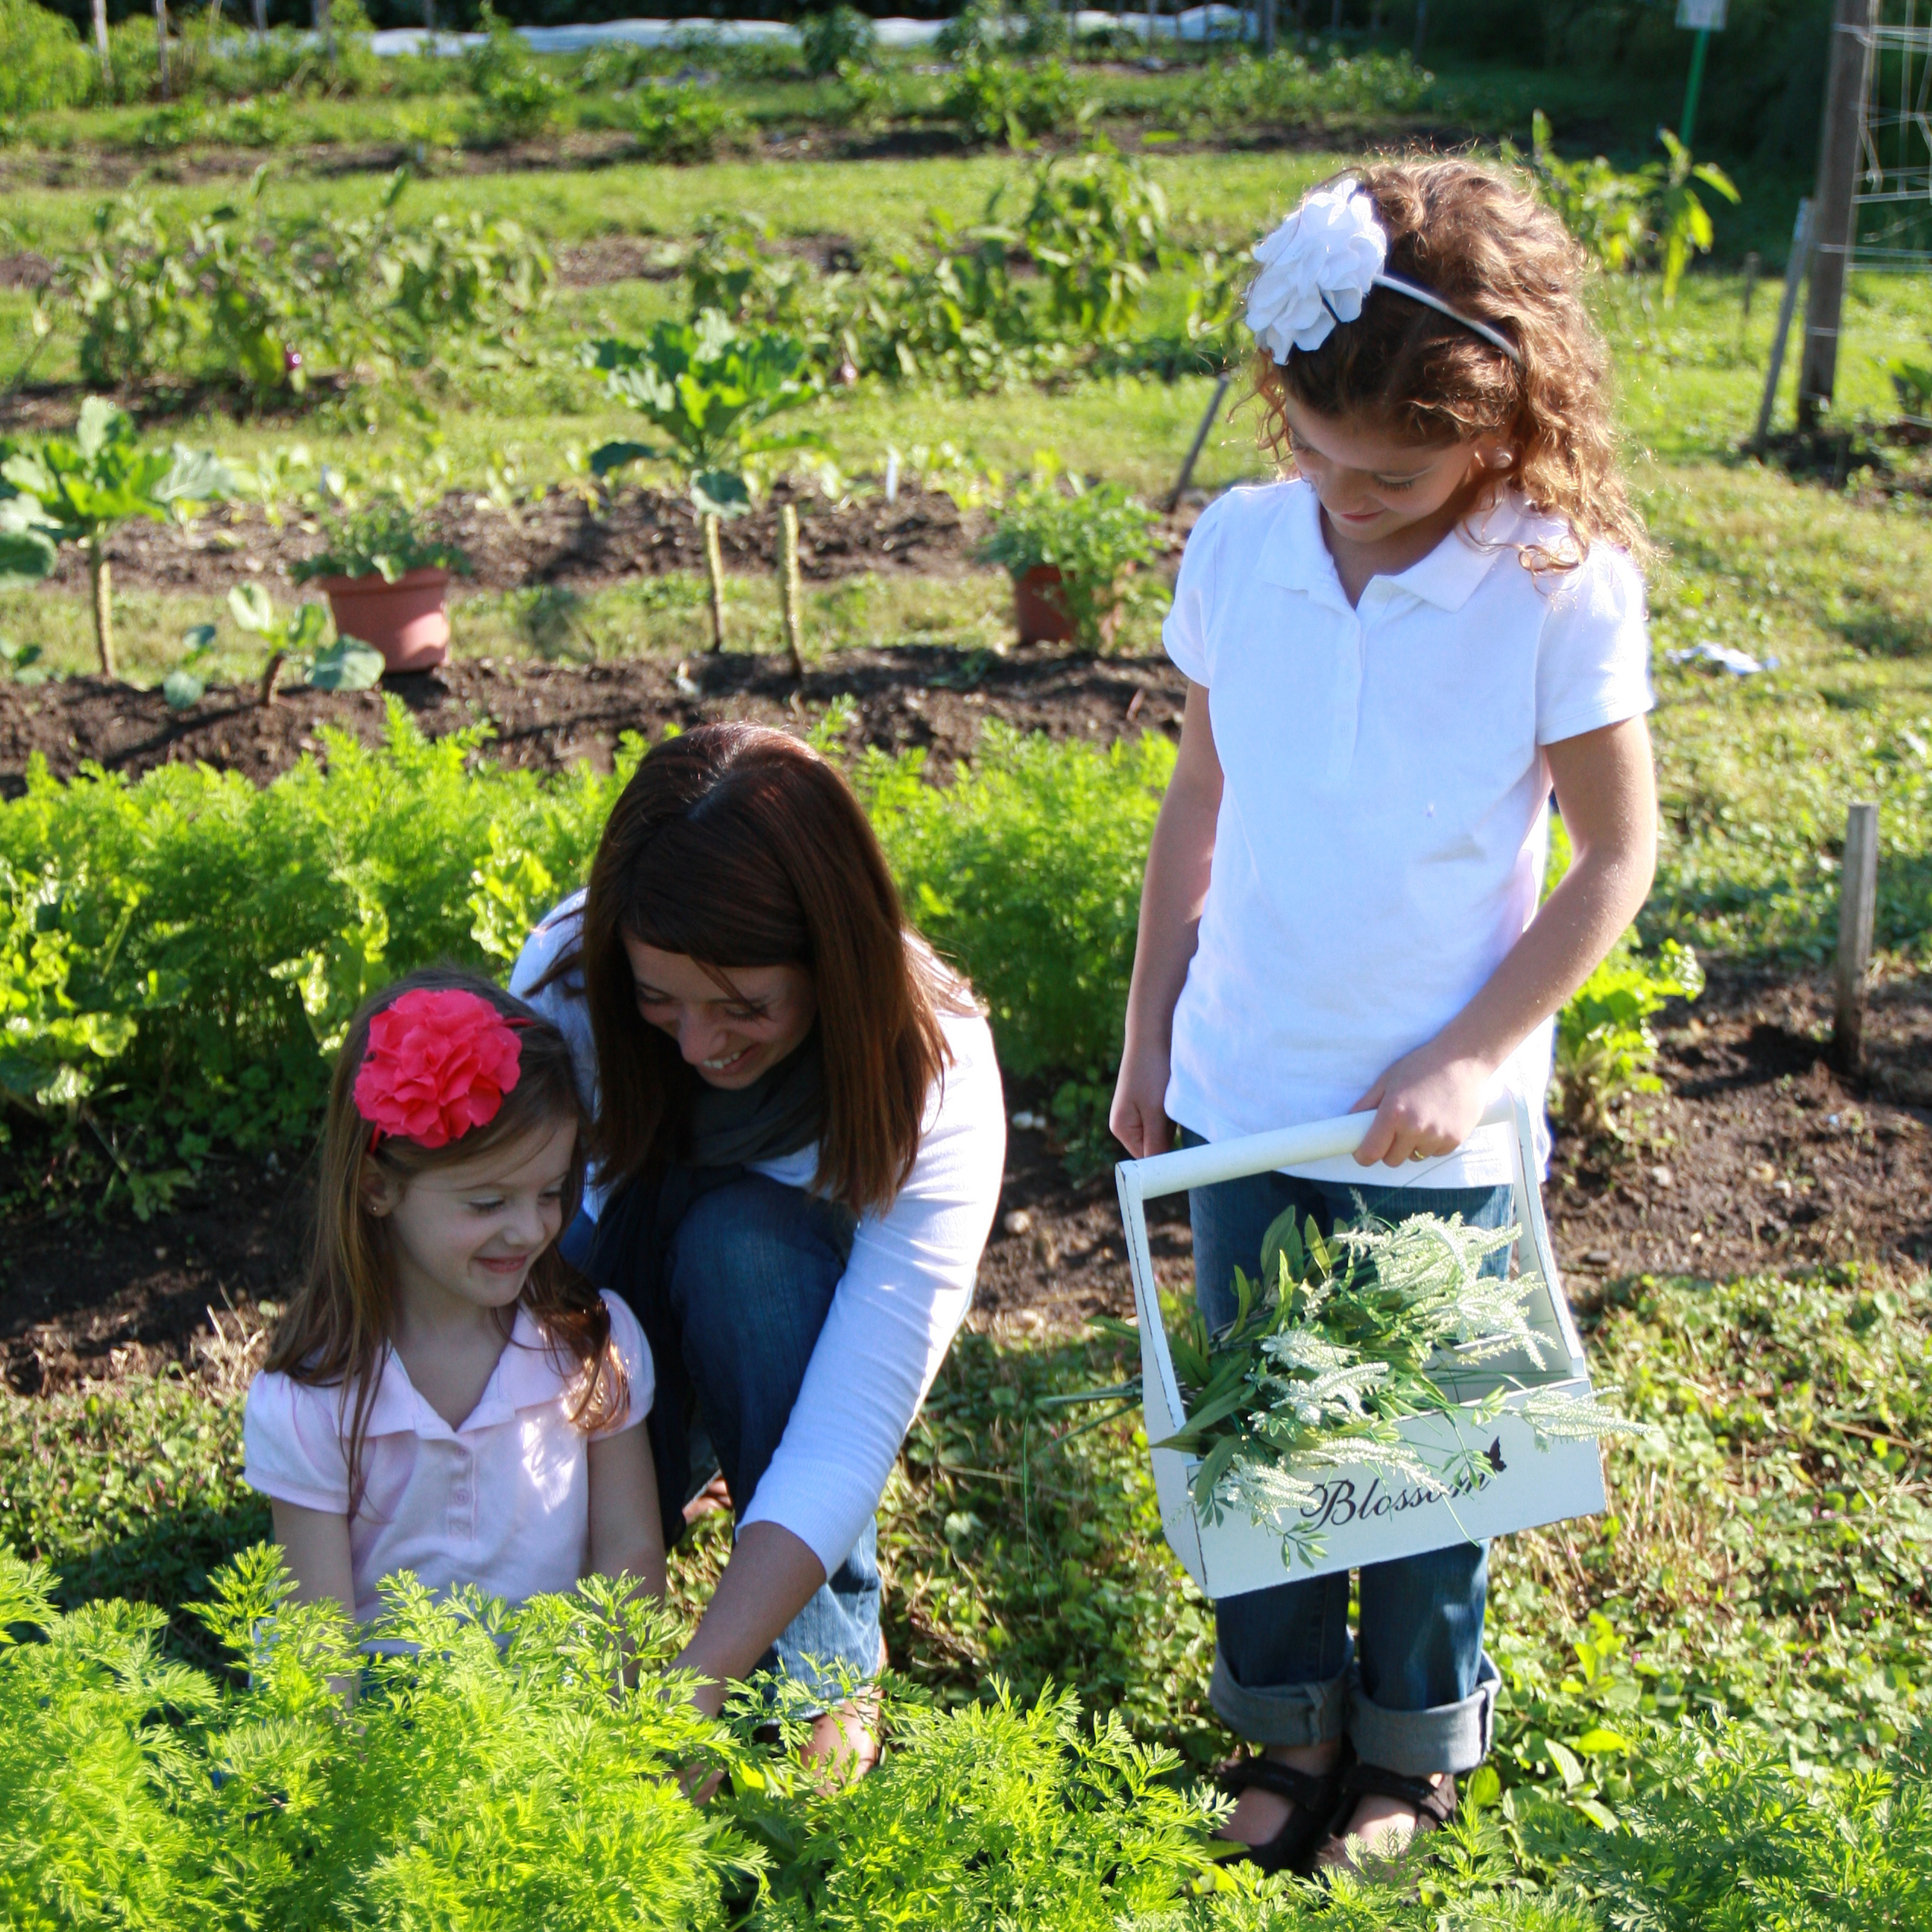 Culinary Therapy founder Lisa Gatti picks carrots with her daughters in their vegetable garden.